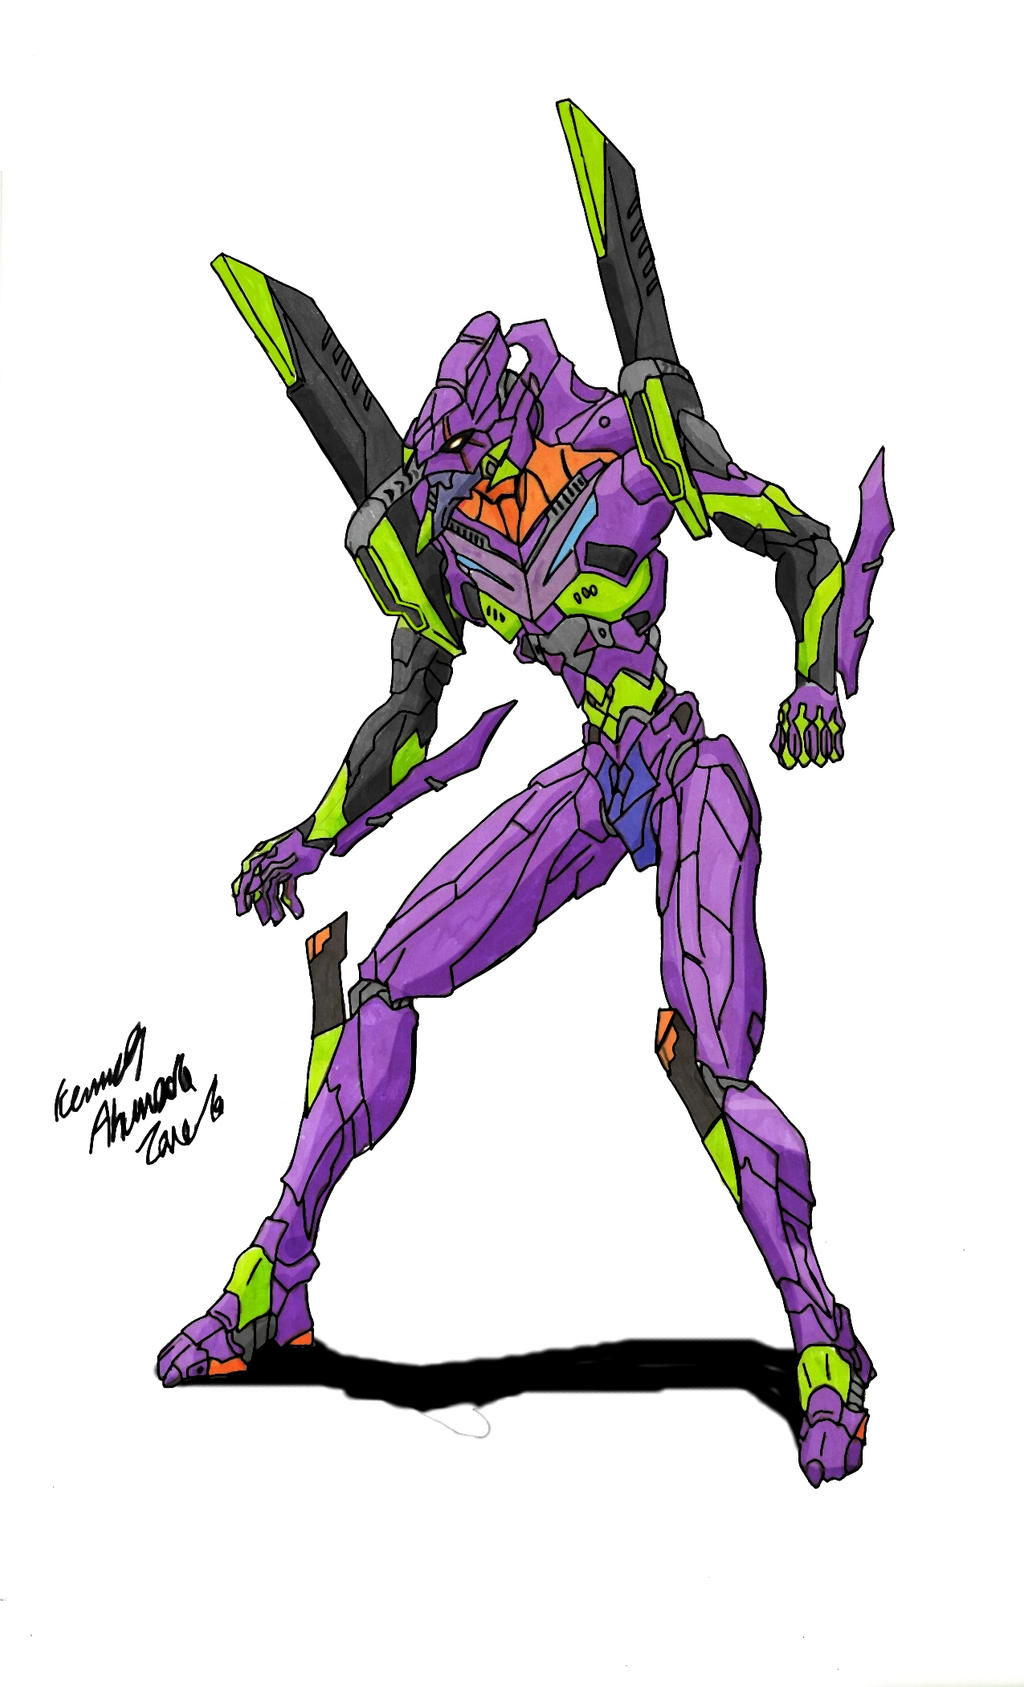 Evangelion Unit-01 by Dino-master